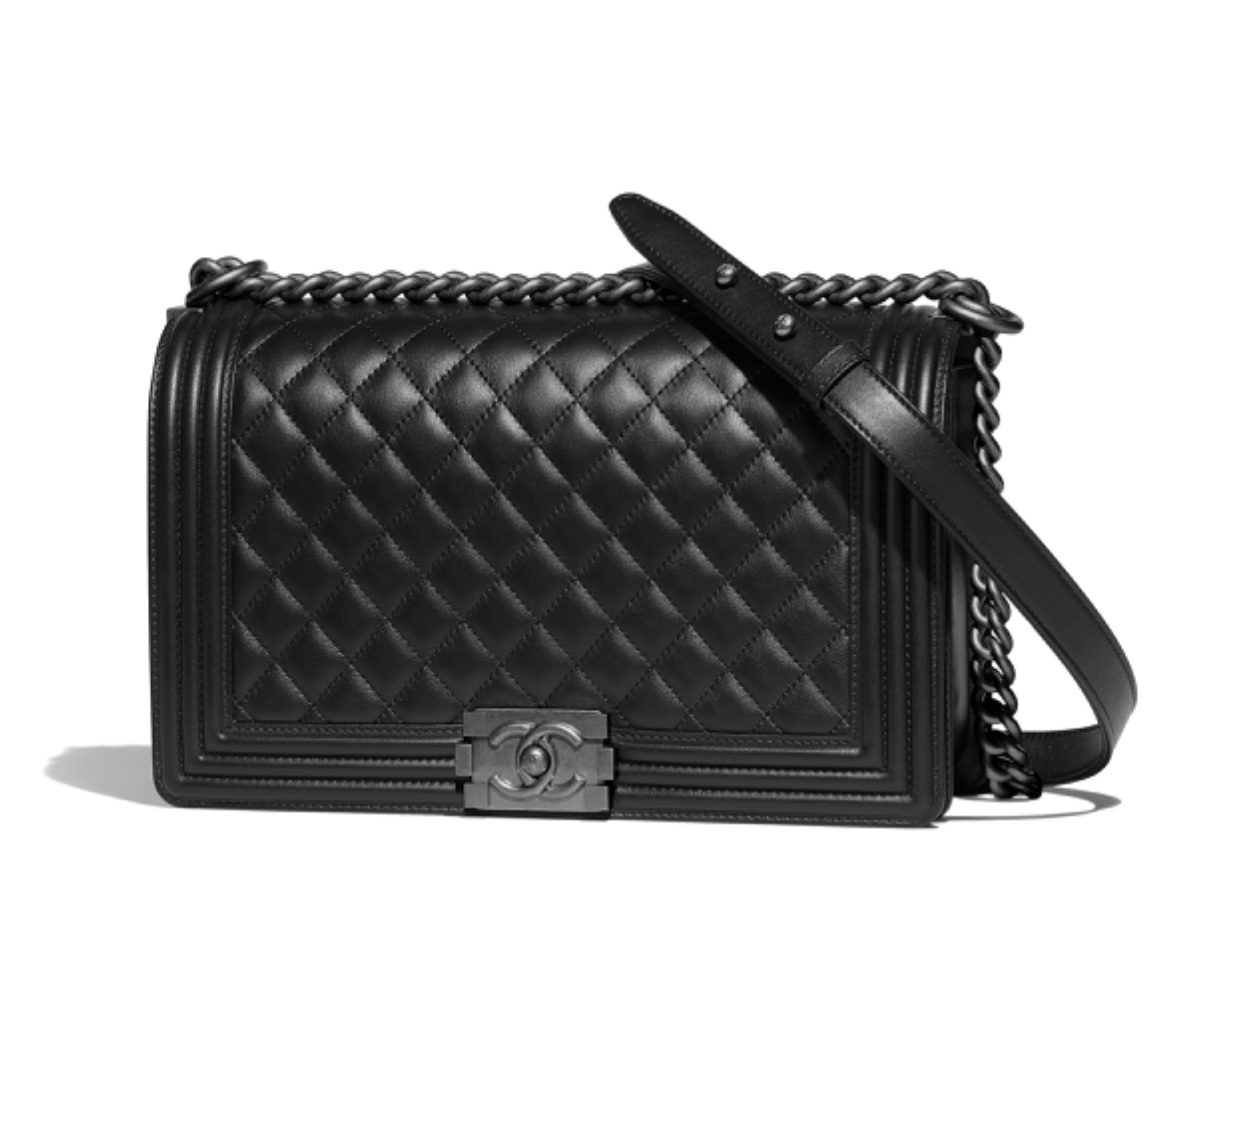 Chanel Large (or Medium) Boy Handbag Calfskin w. Ruthenium Metal